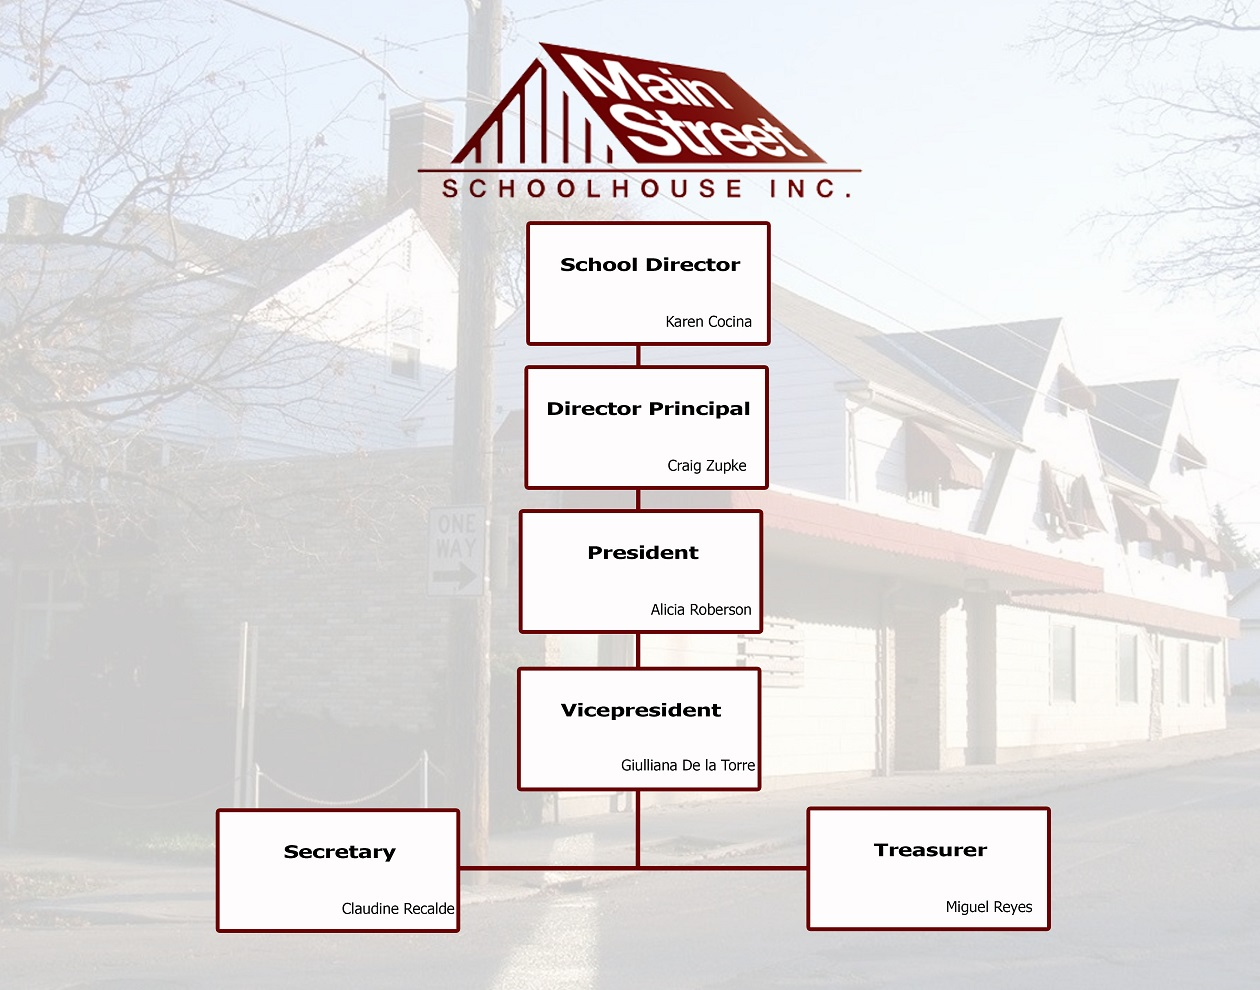 Organization chart main street schoolhouse language institute goals in us universities or to excel in their career choice and provides activities and services that promote friendship and cultural transition altavistaventures Choice Image